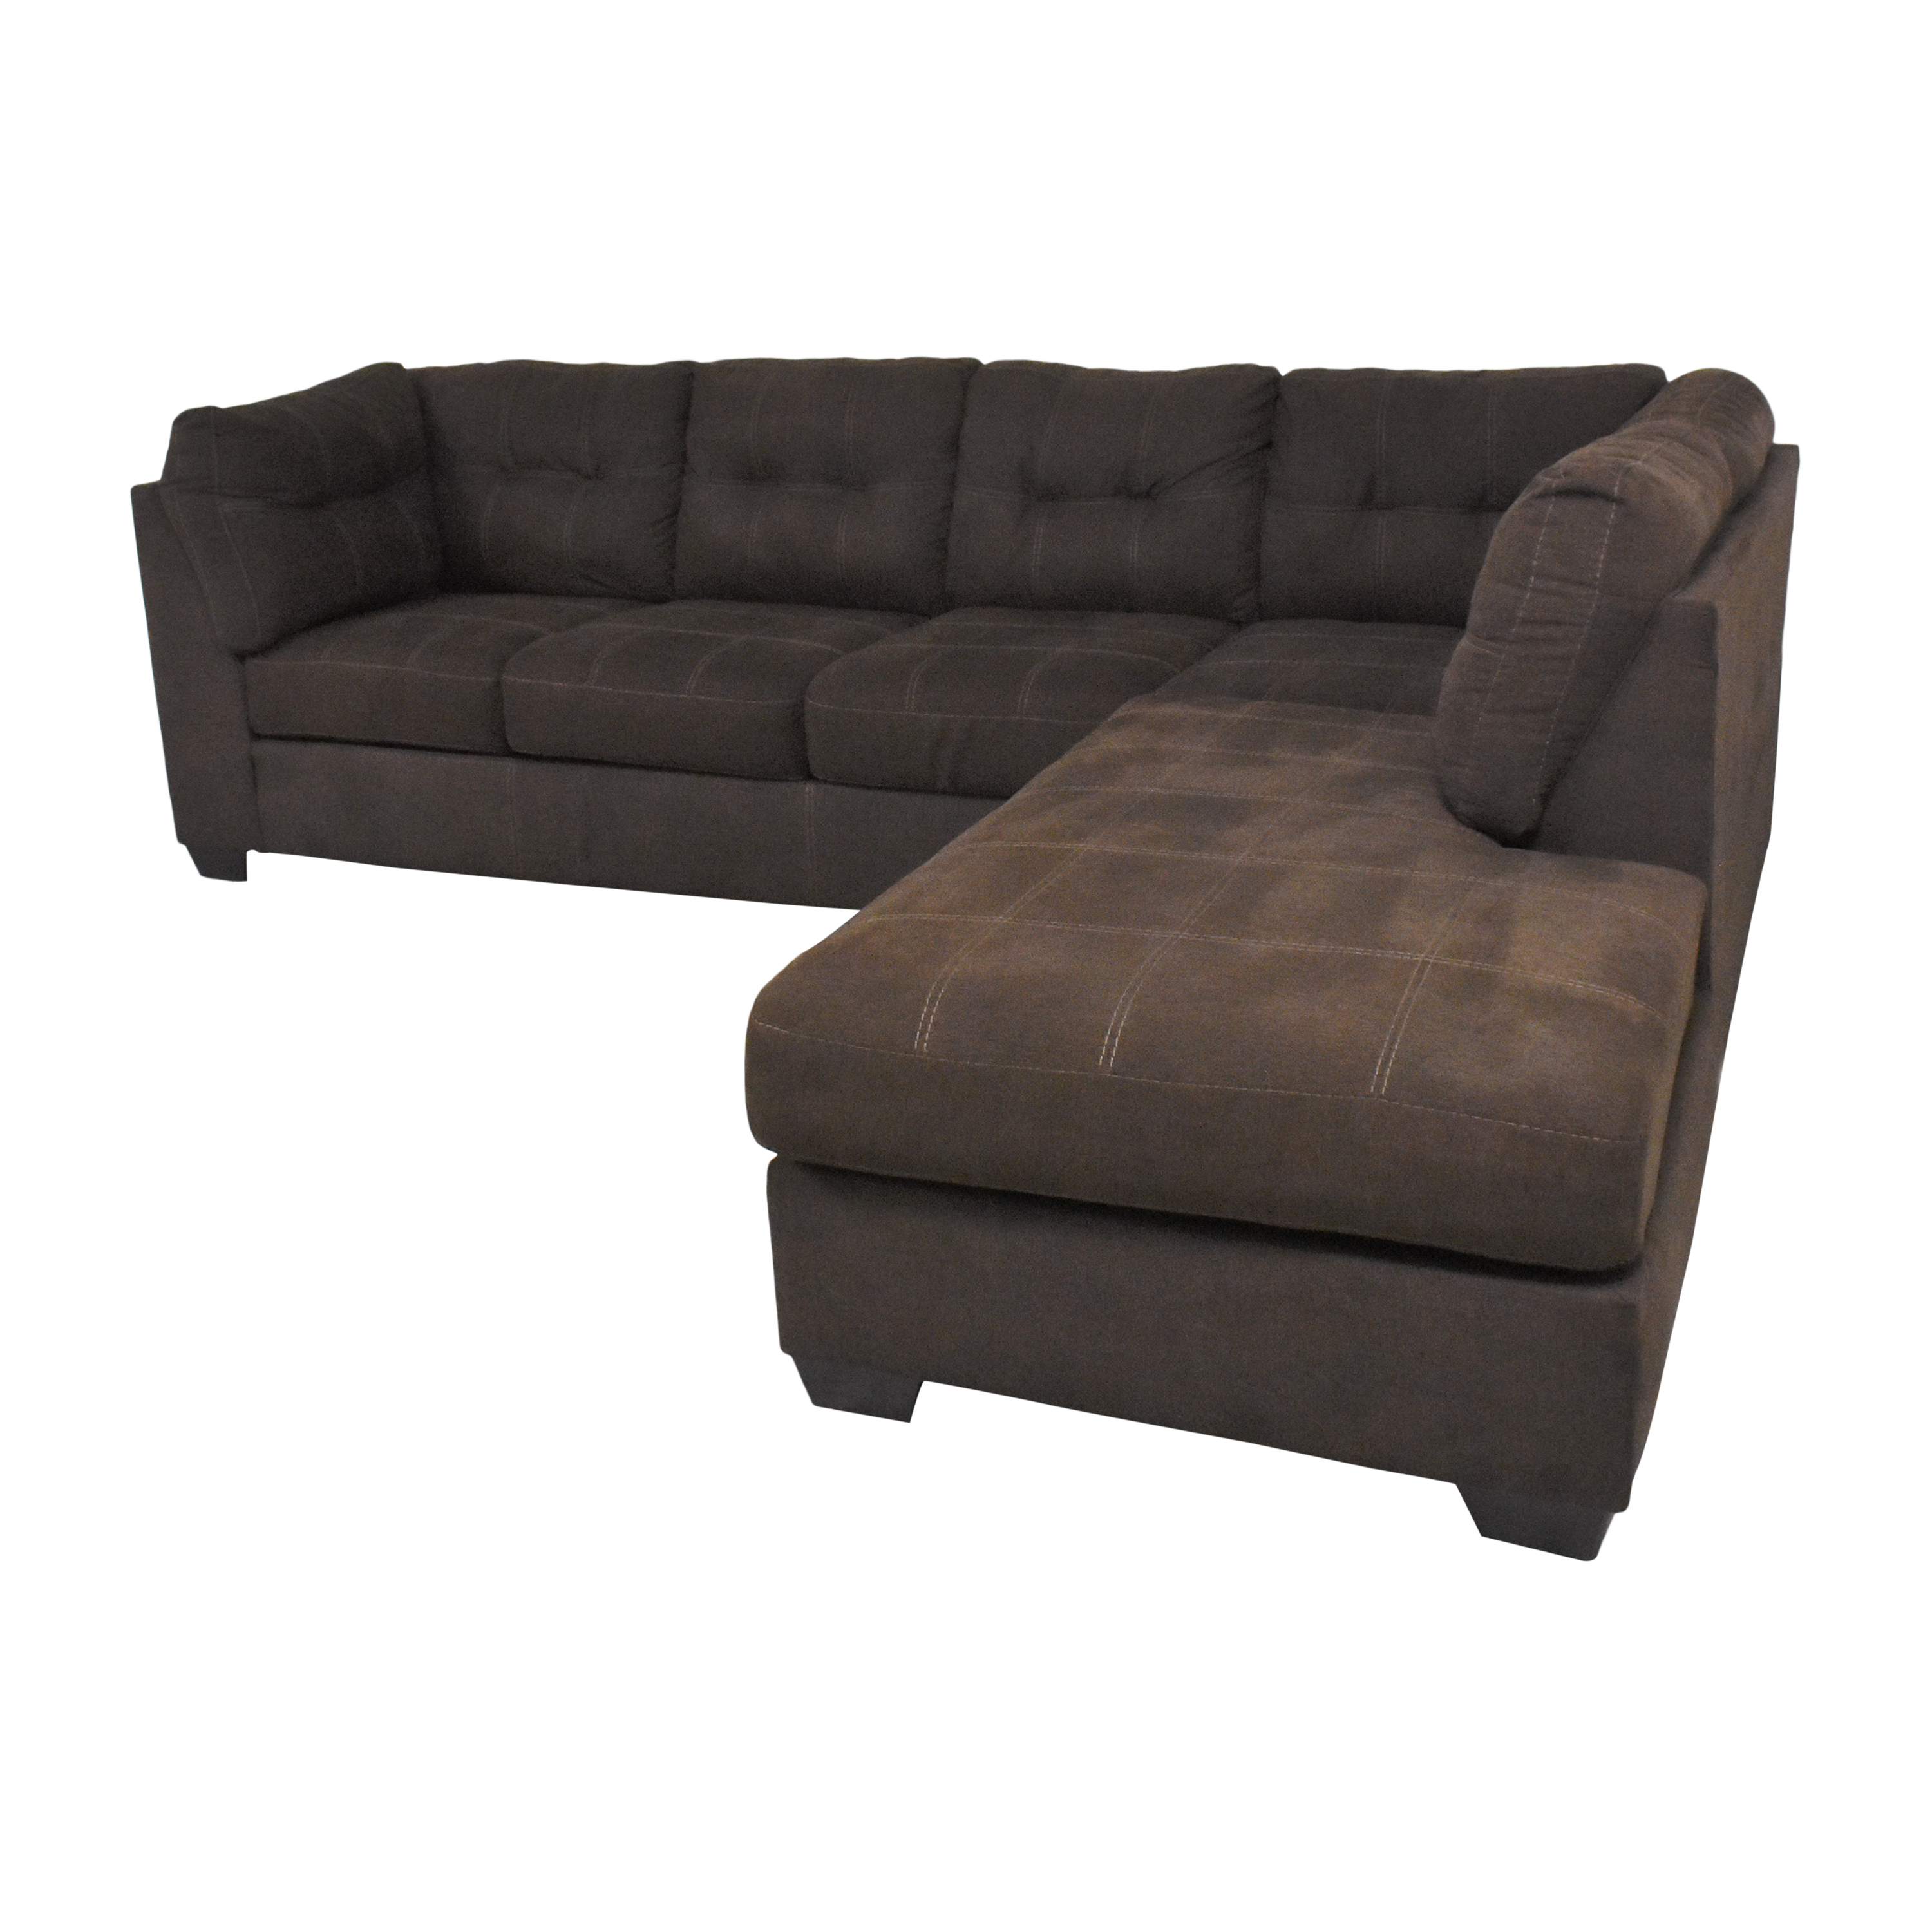 Ashley Furniture Ashley Furniture Pitkin Two-Piece Chaise Sectional with Ottoman nyc